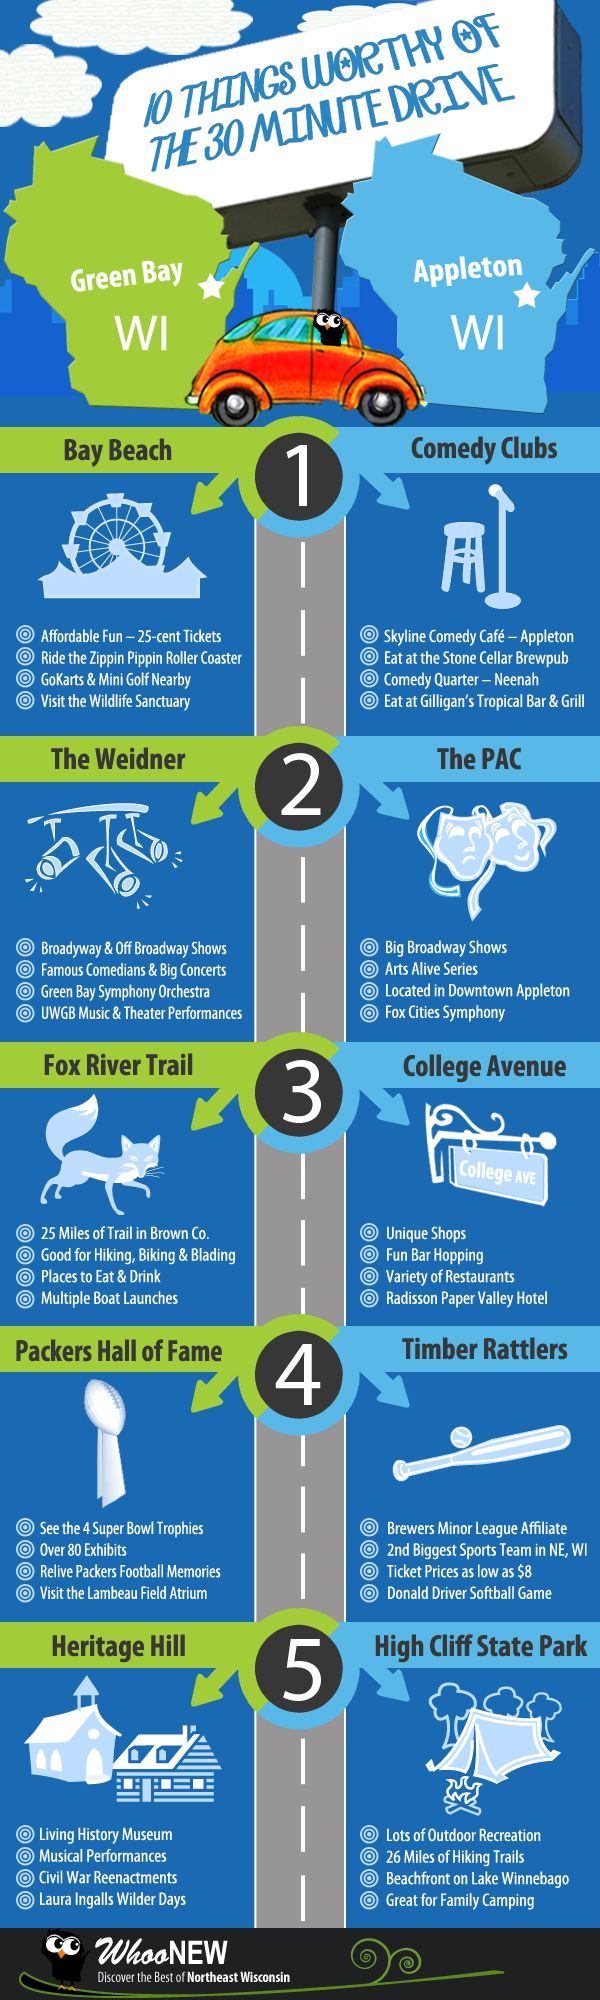 10 Things Worthy of the 30-minute-drive-to Appleton & Green Bay